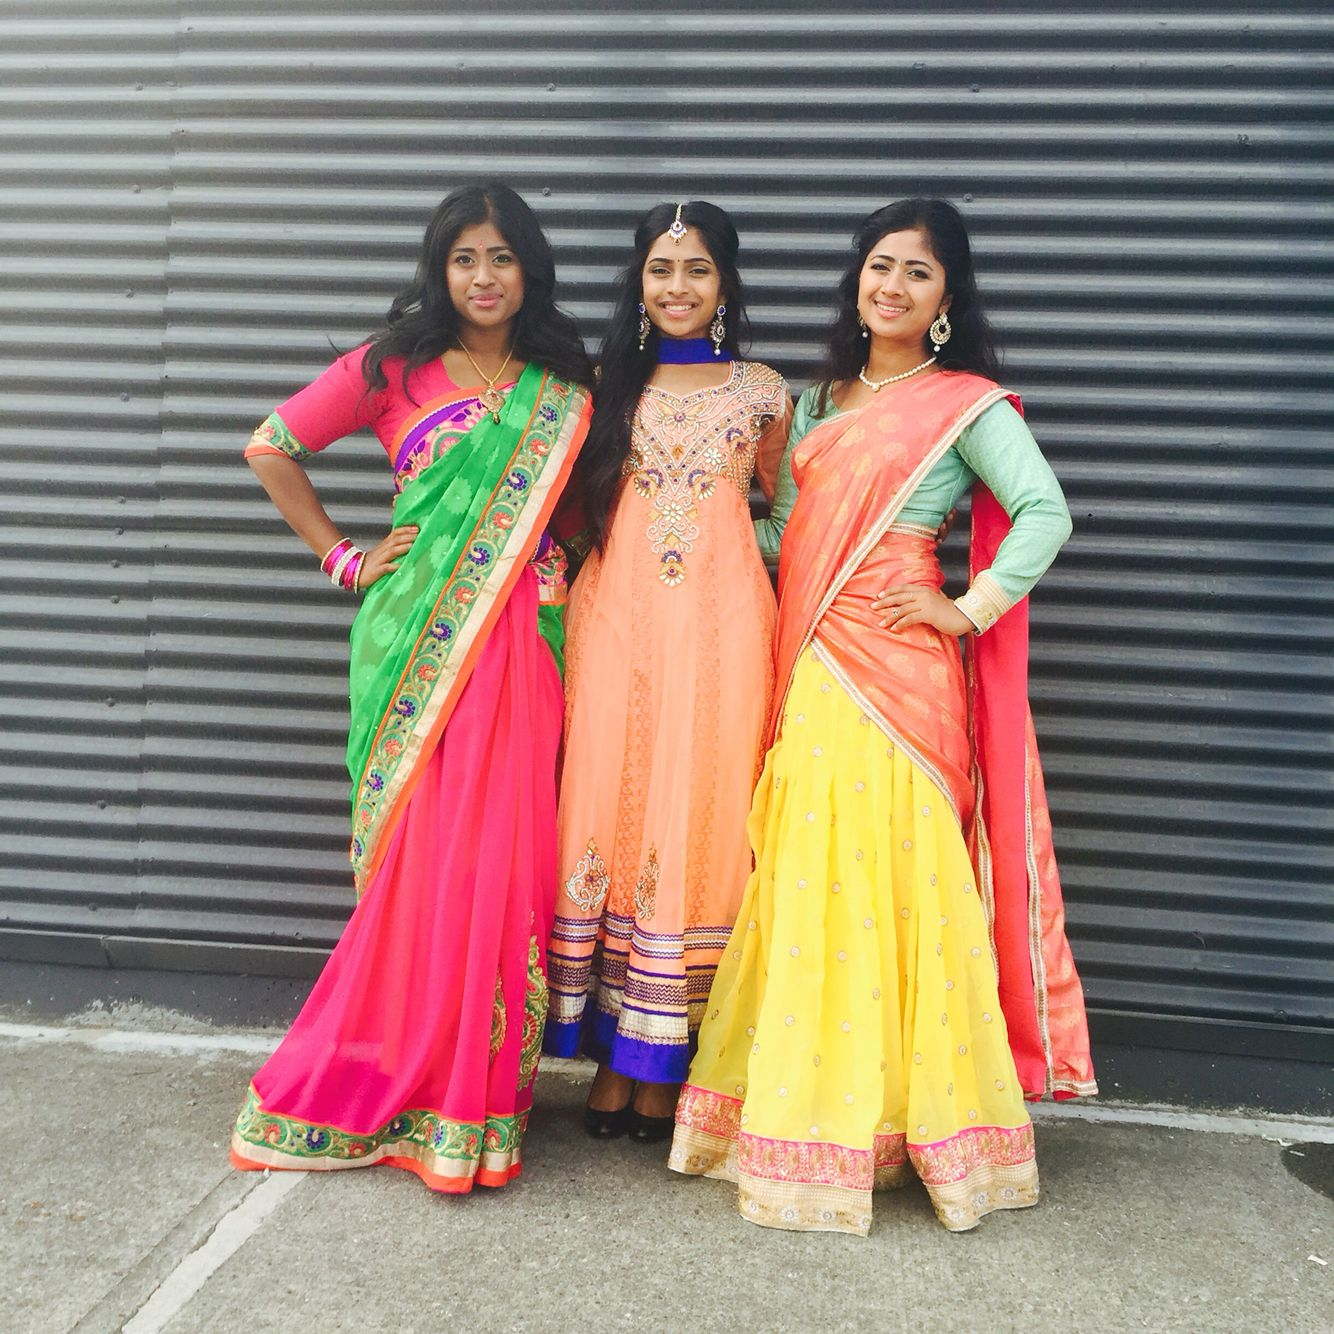 Saree Anarkali Half Saree From Left To Right Indian Wedding Guest Outfit Ideas Indian Wedding Outfits Wedding Attire Guest Wedding Guest Outfit [ 1334 x 1334 Pixel ]